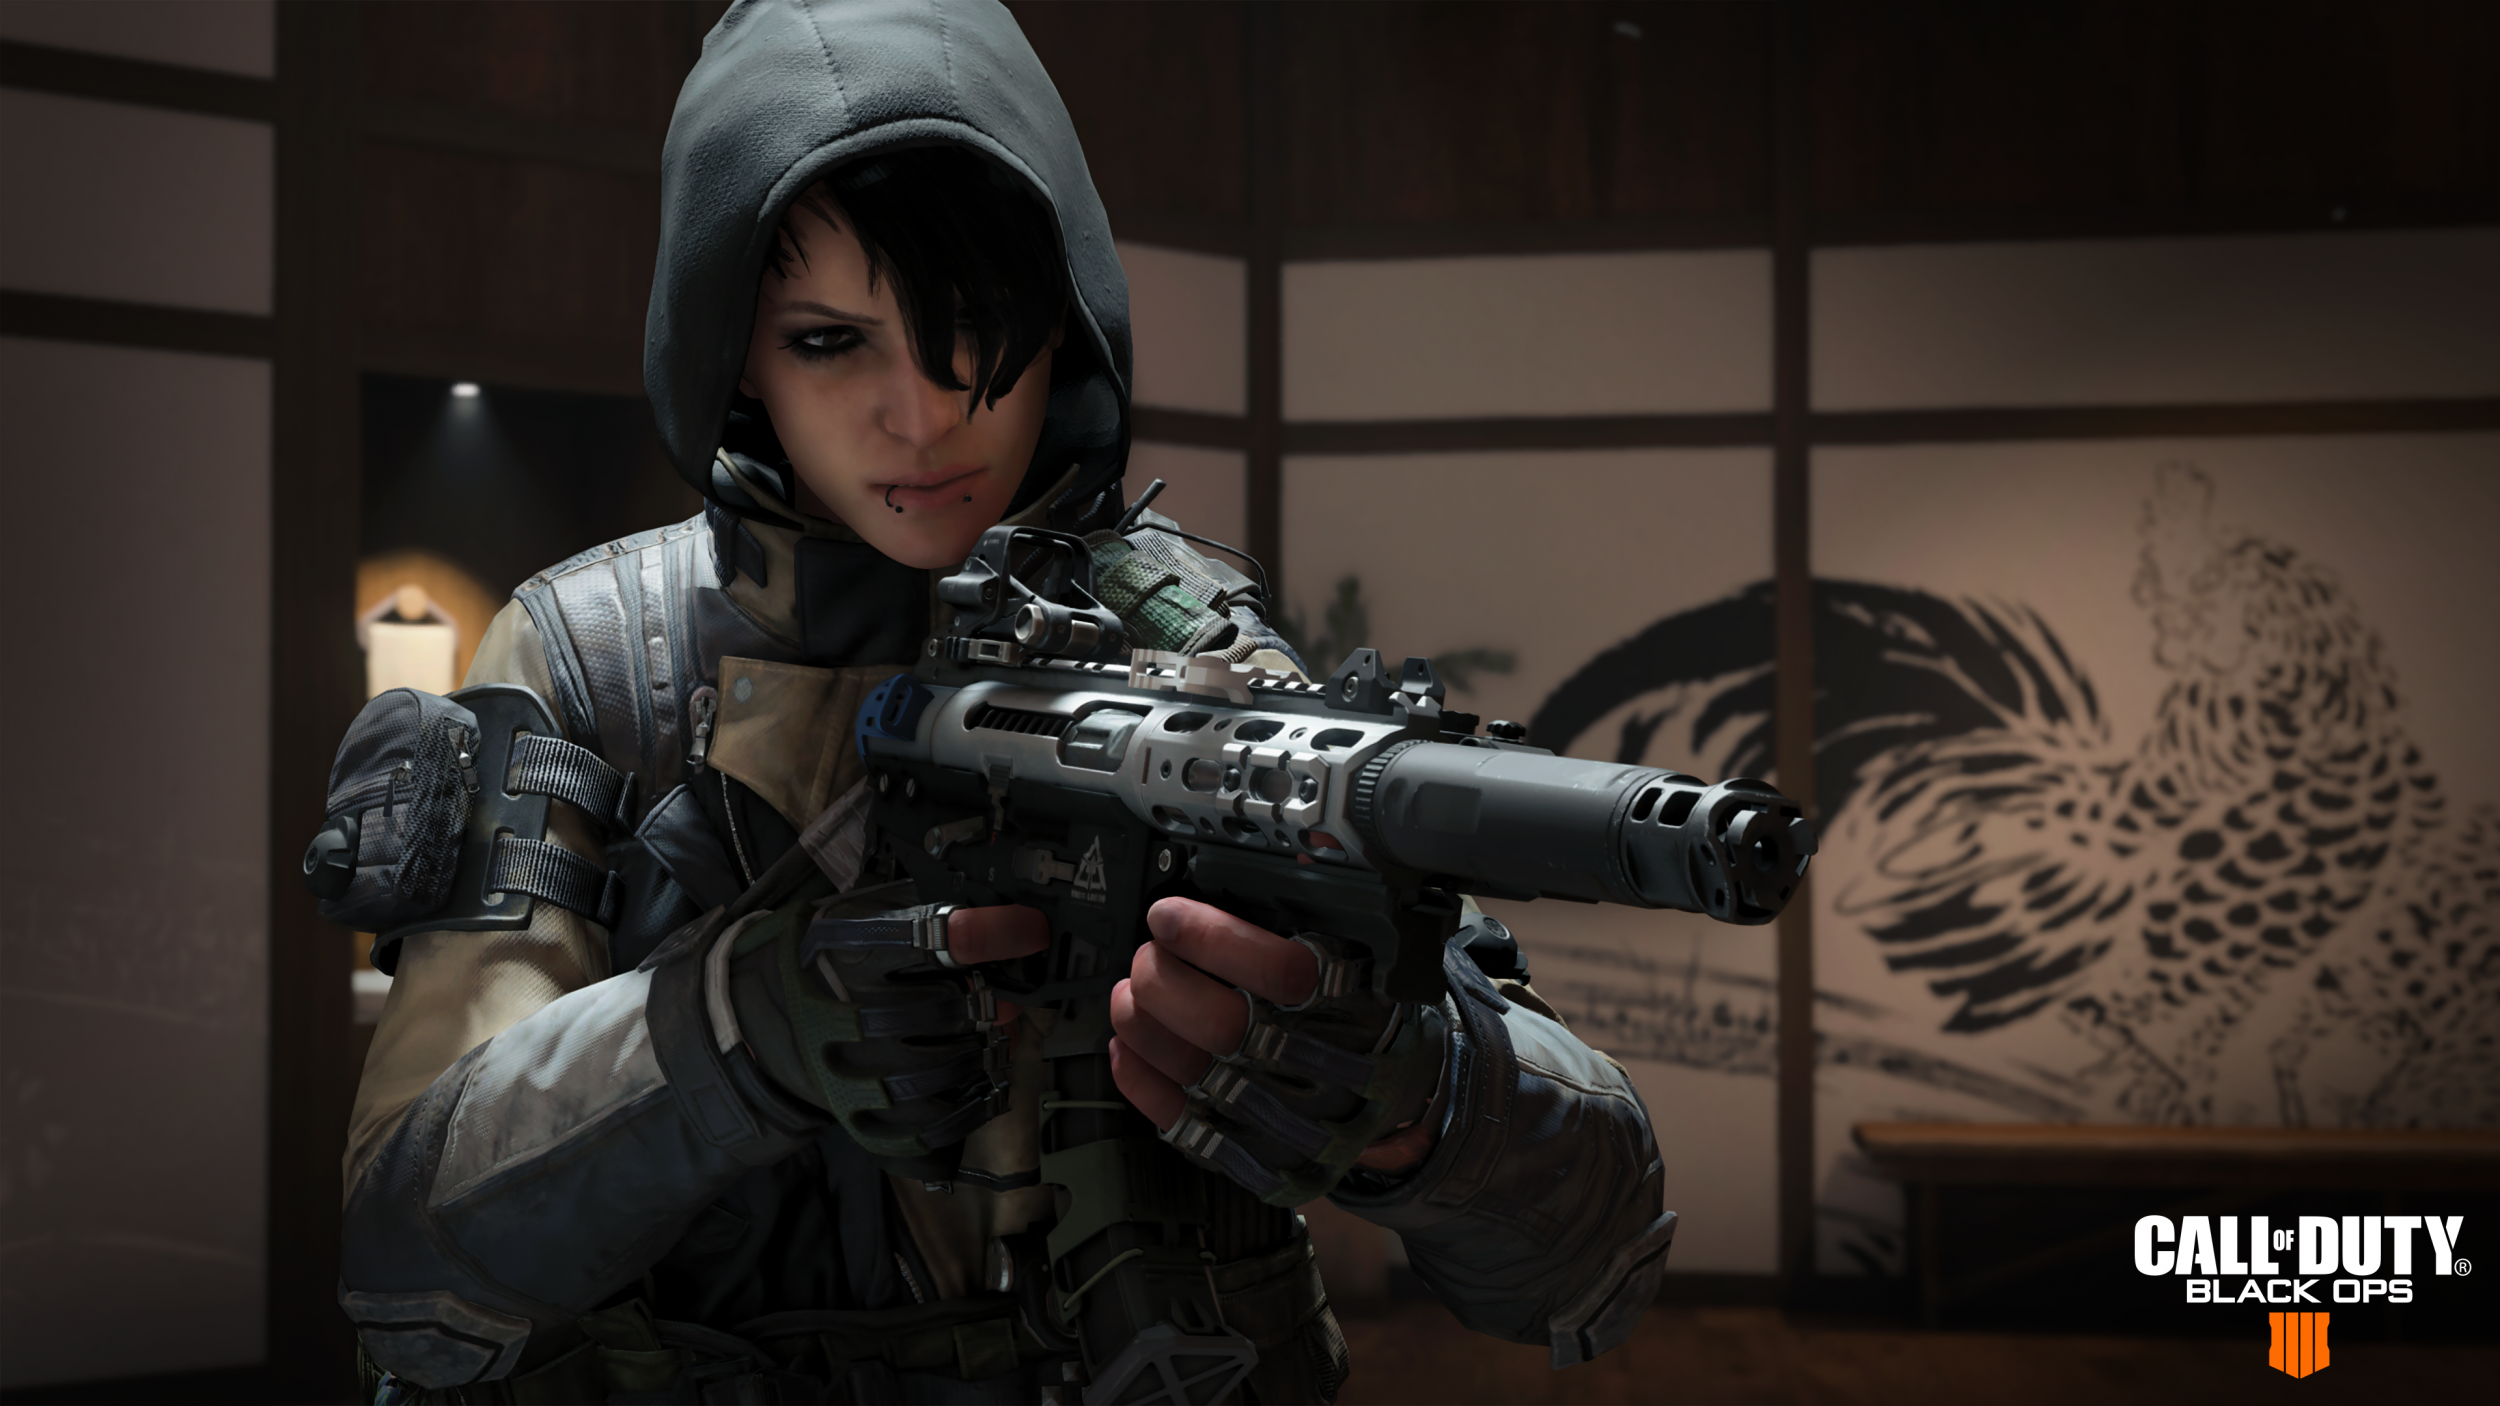 Call of Duty: Black Ops 4' Update 1.16 Adds Ancient Evil & Barebones.